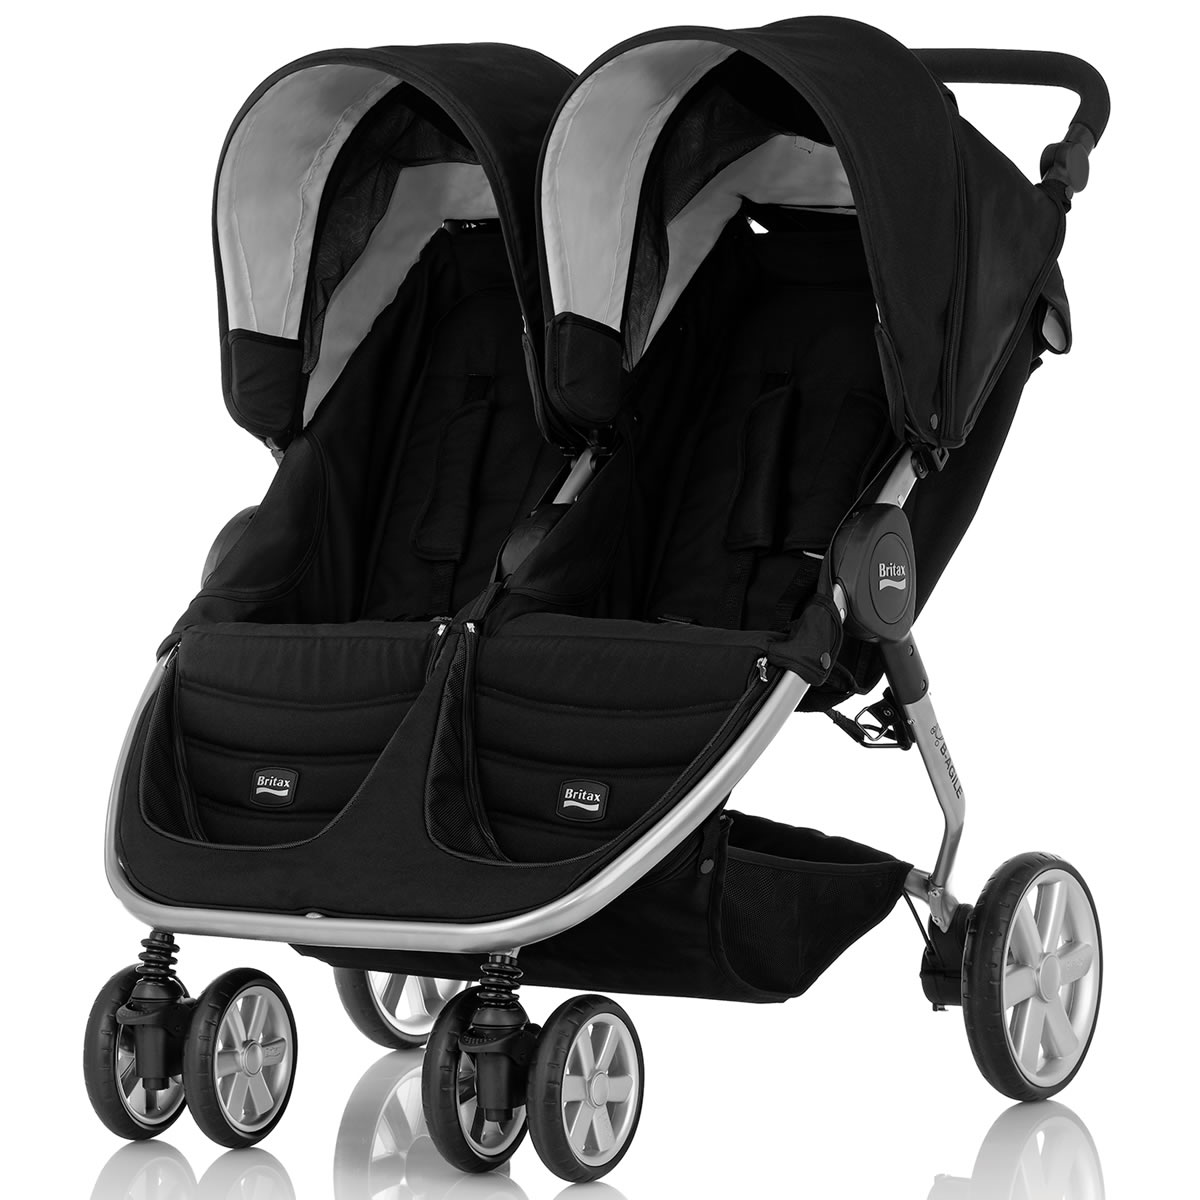 height adjustable high chair baby covers queen anne britax b-agile 2014 double stroller - black